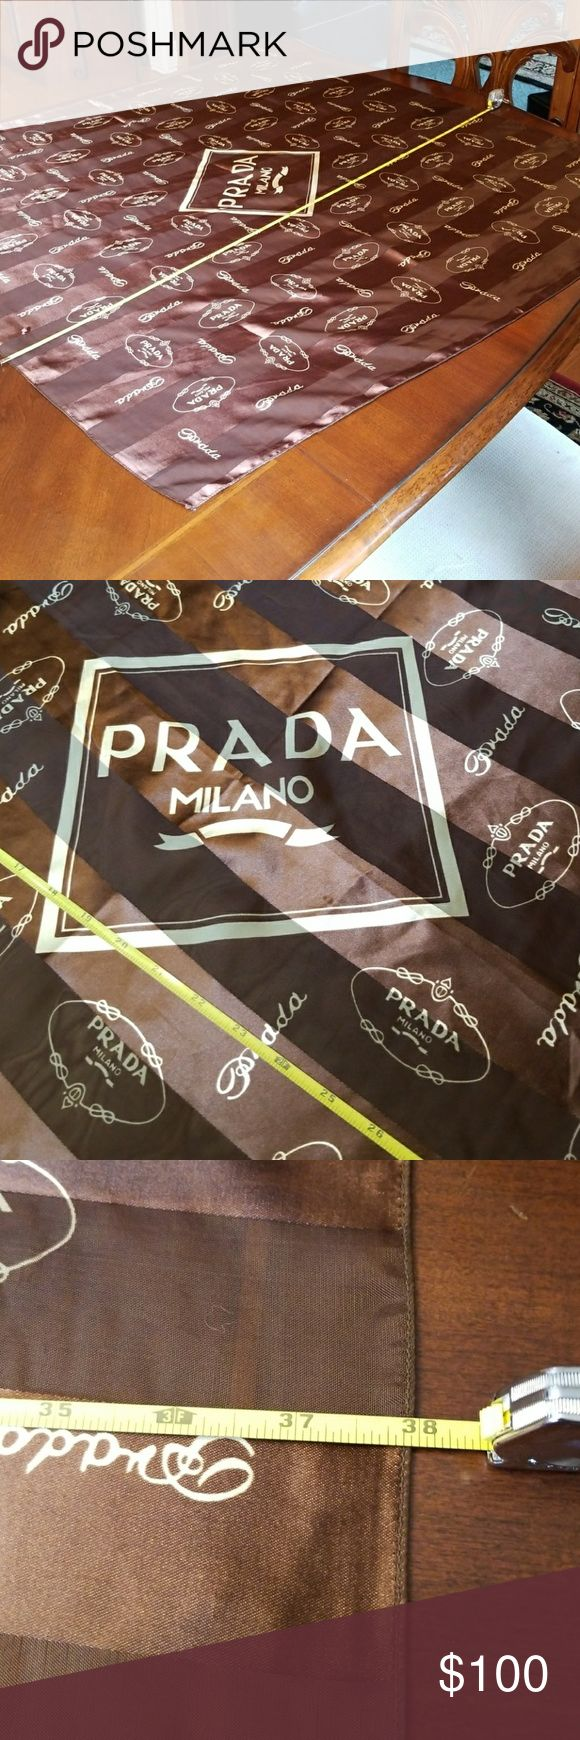 Prada scarf made in France. 100% Polyester It's good condition. I don't see any holes or stain.. Prada Accessories Scarves & Wraps